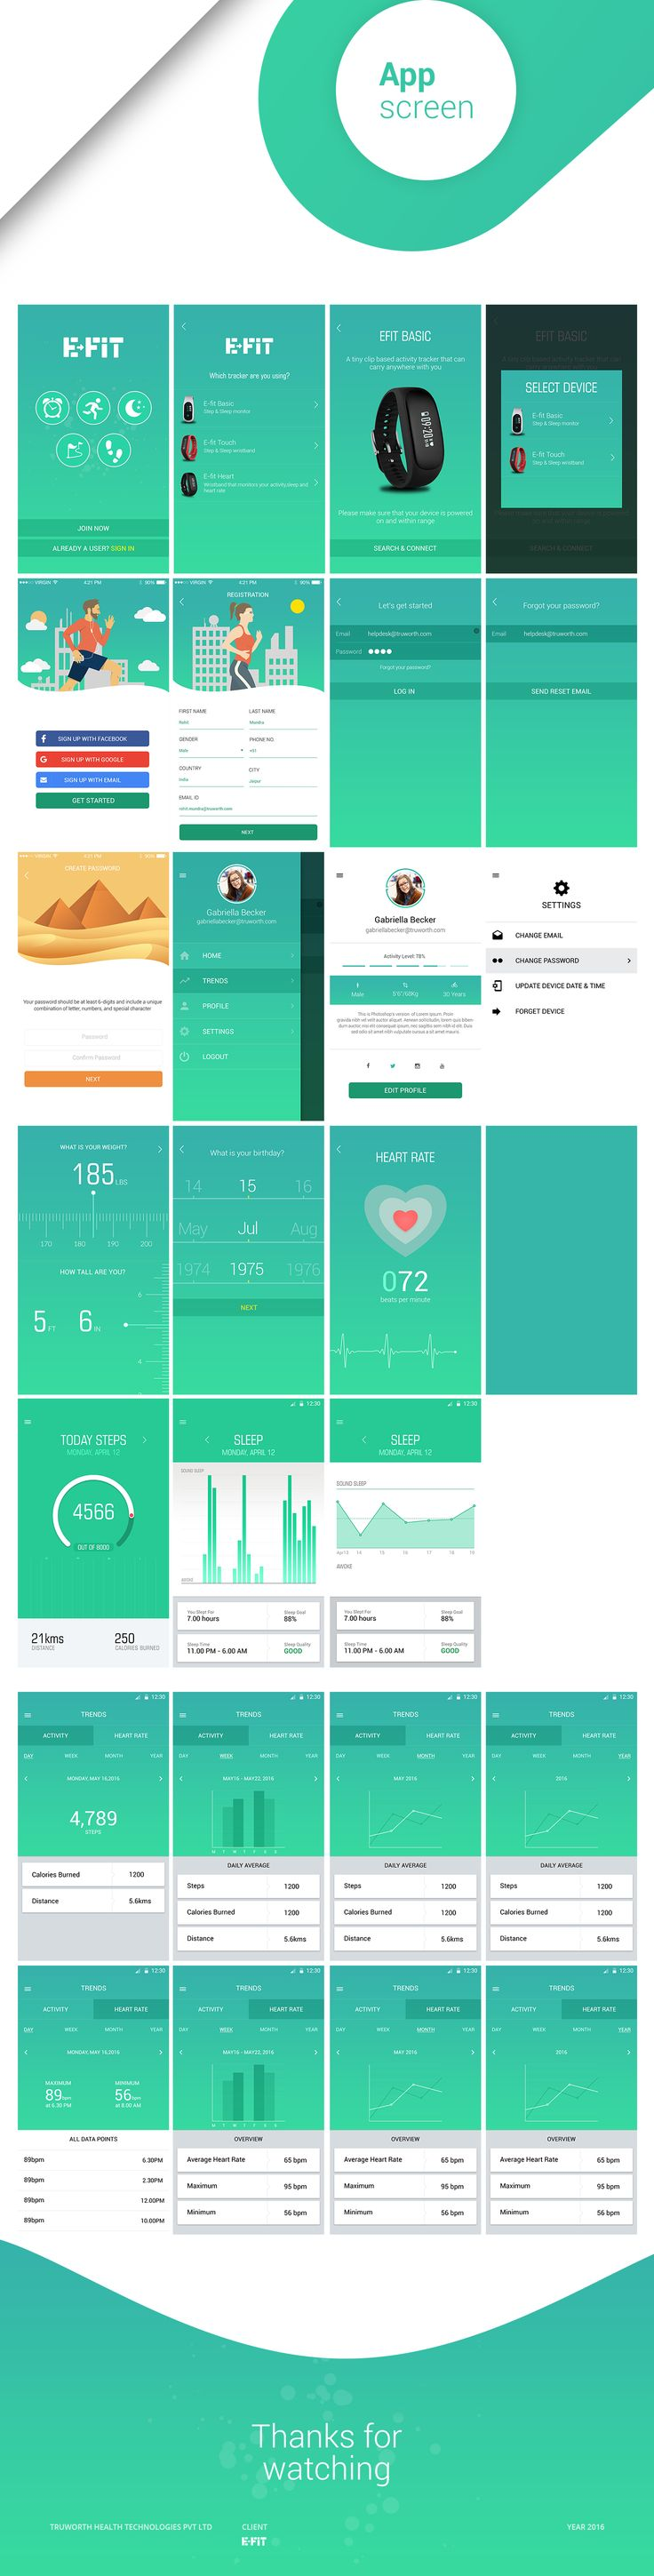 EFIT Tracker on Behance